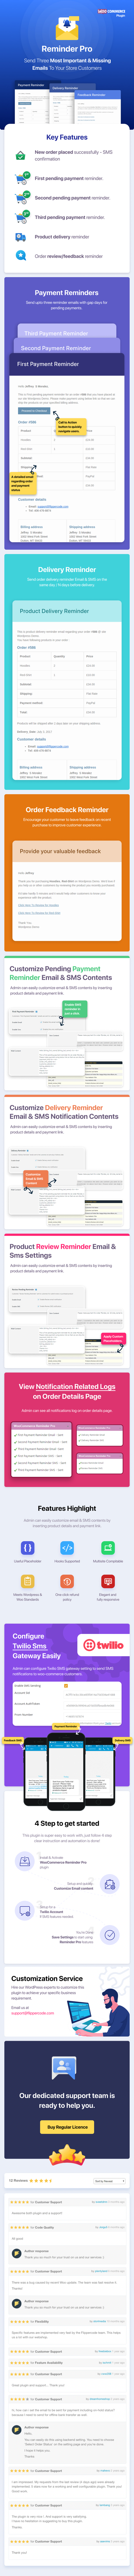 WooCommerce Reminder Email Pro Features